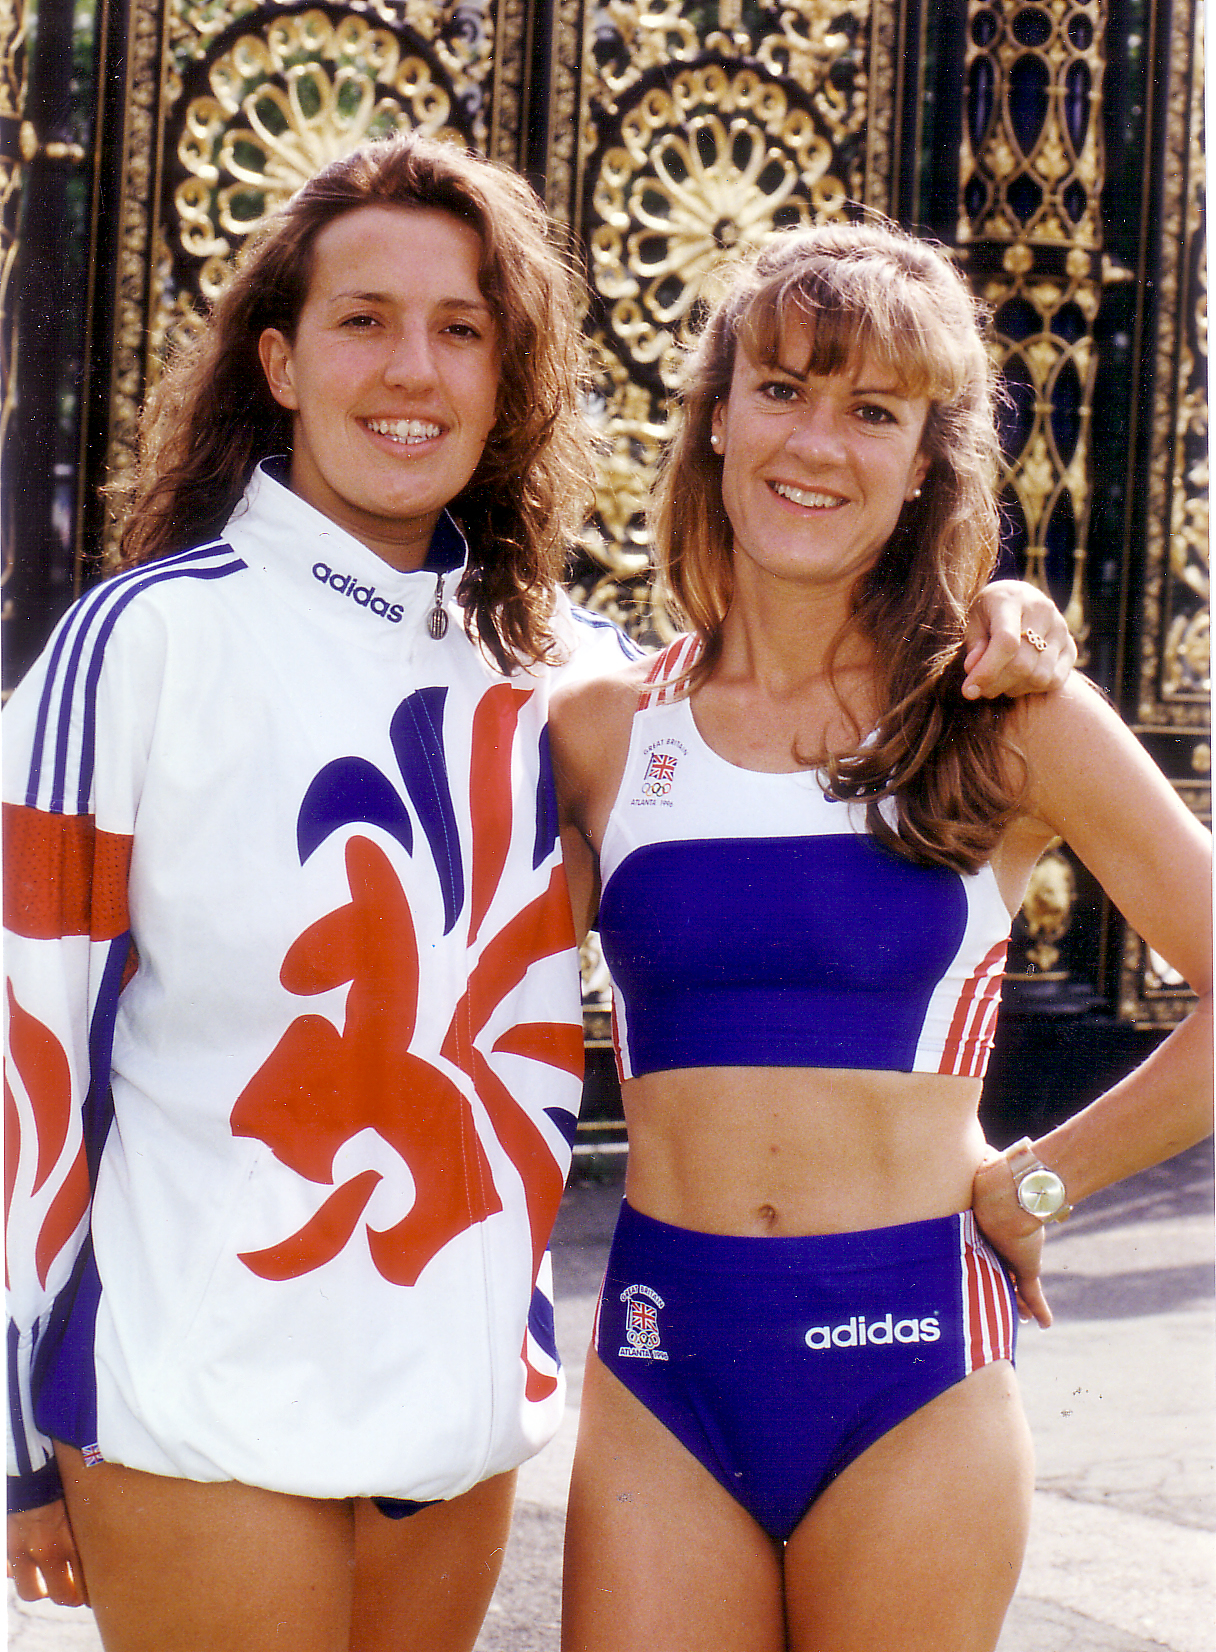 Swimmer Helen Slatter and athlete Suzanne Rigg